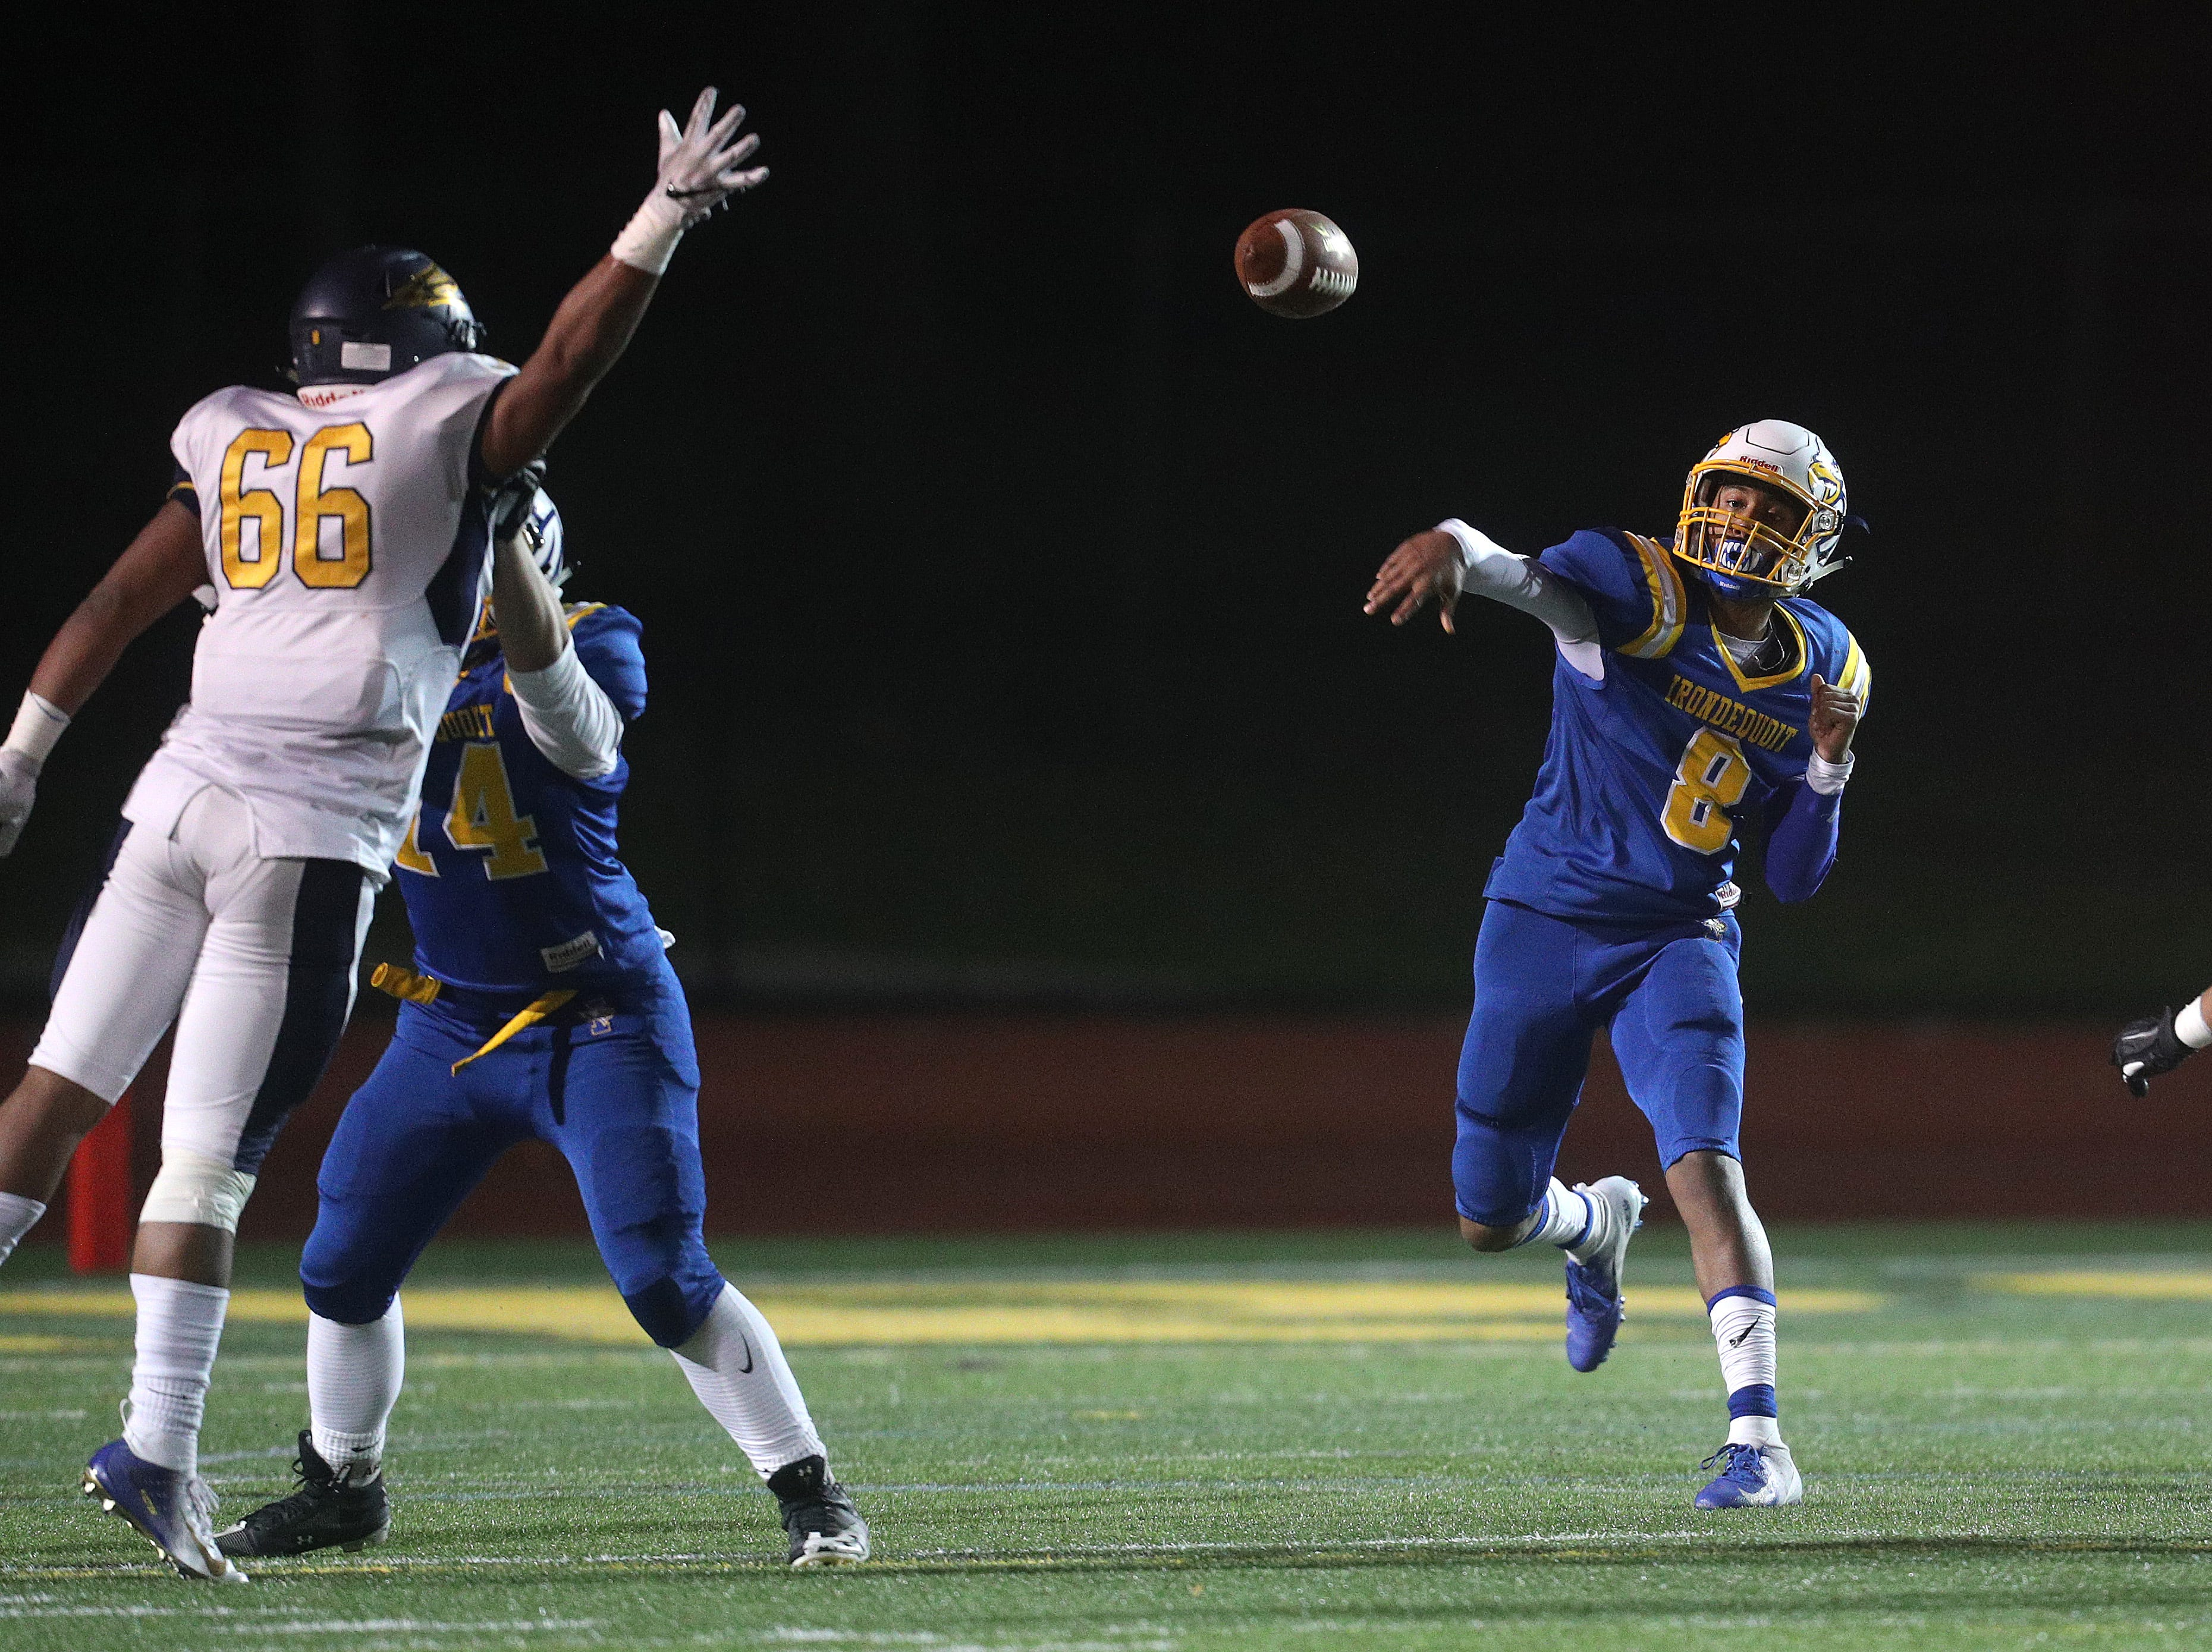 Irondequoit quarterback Freddy June Jr. steps into a throw over Victor's Jon Crowley (66).